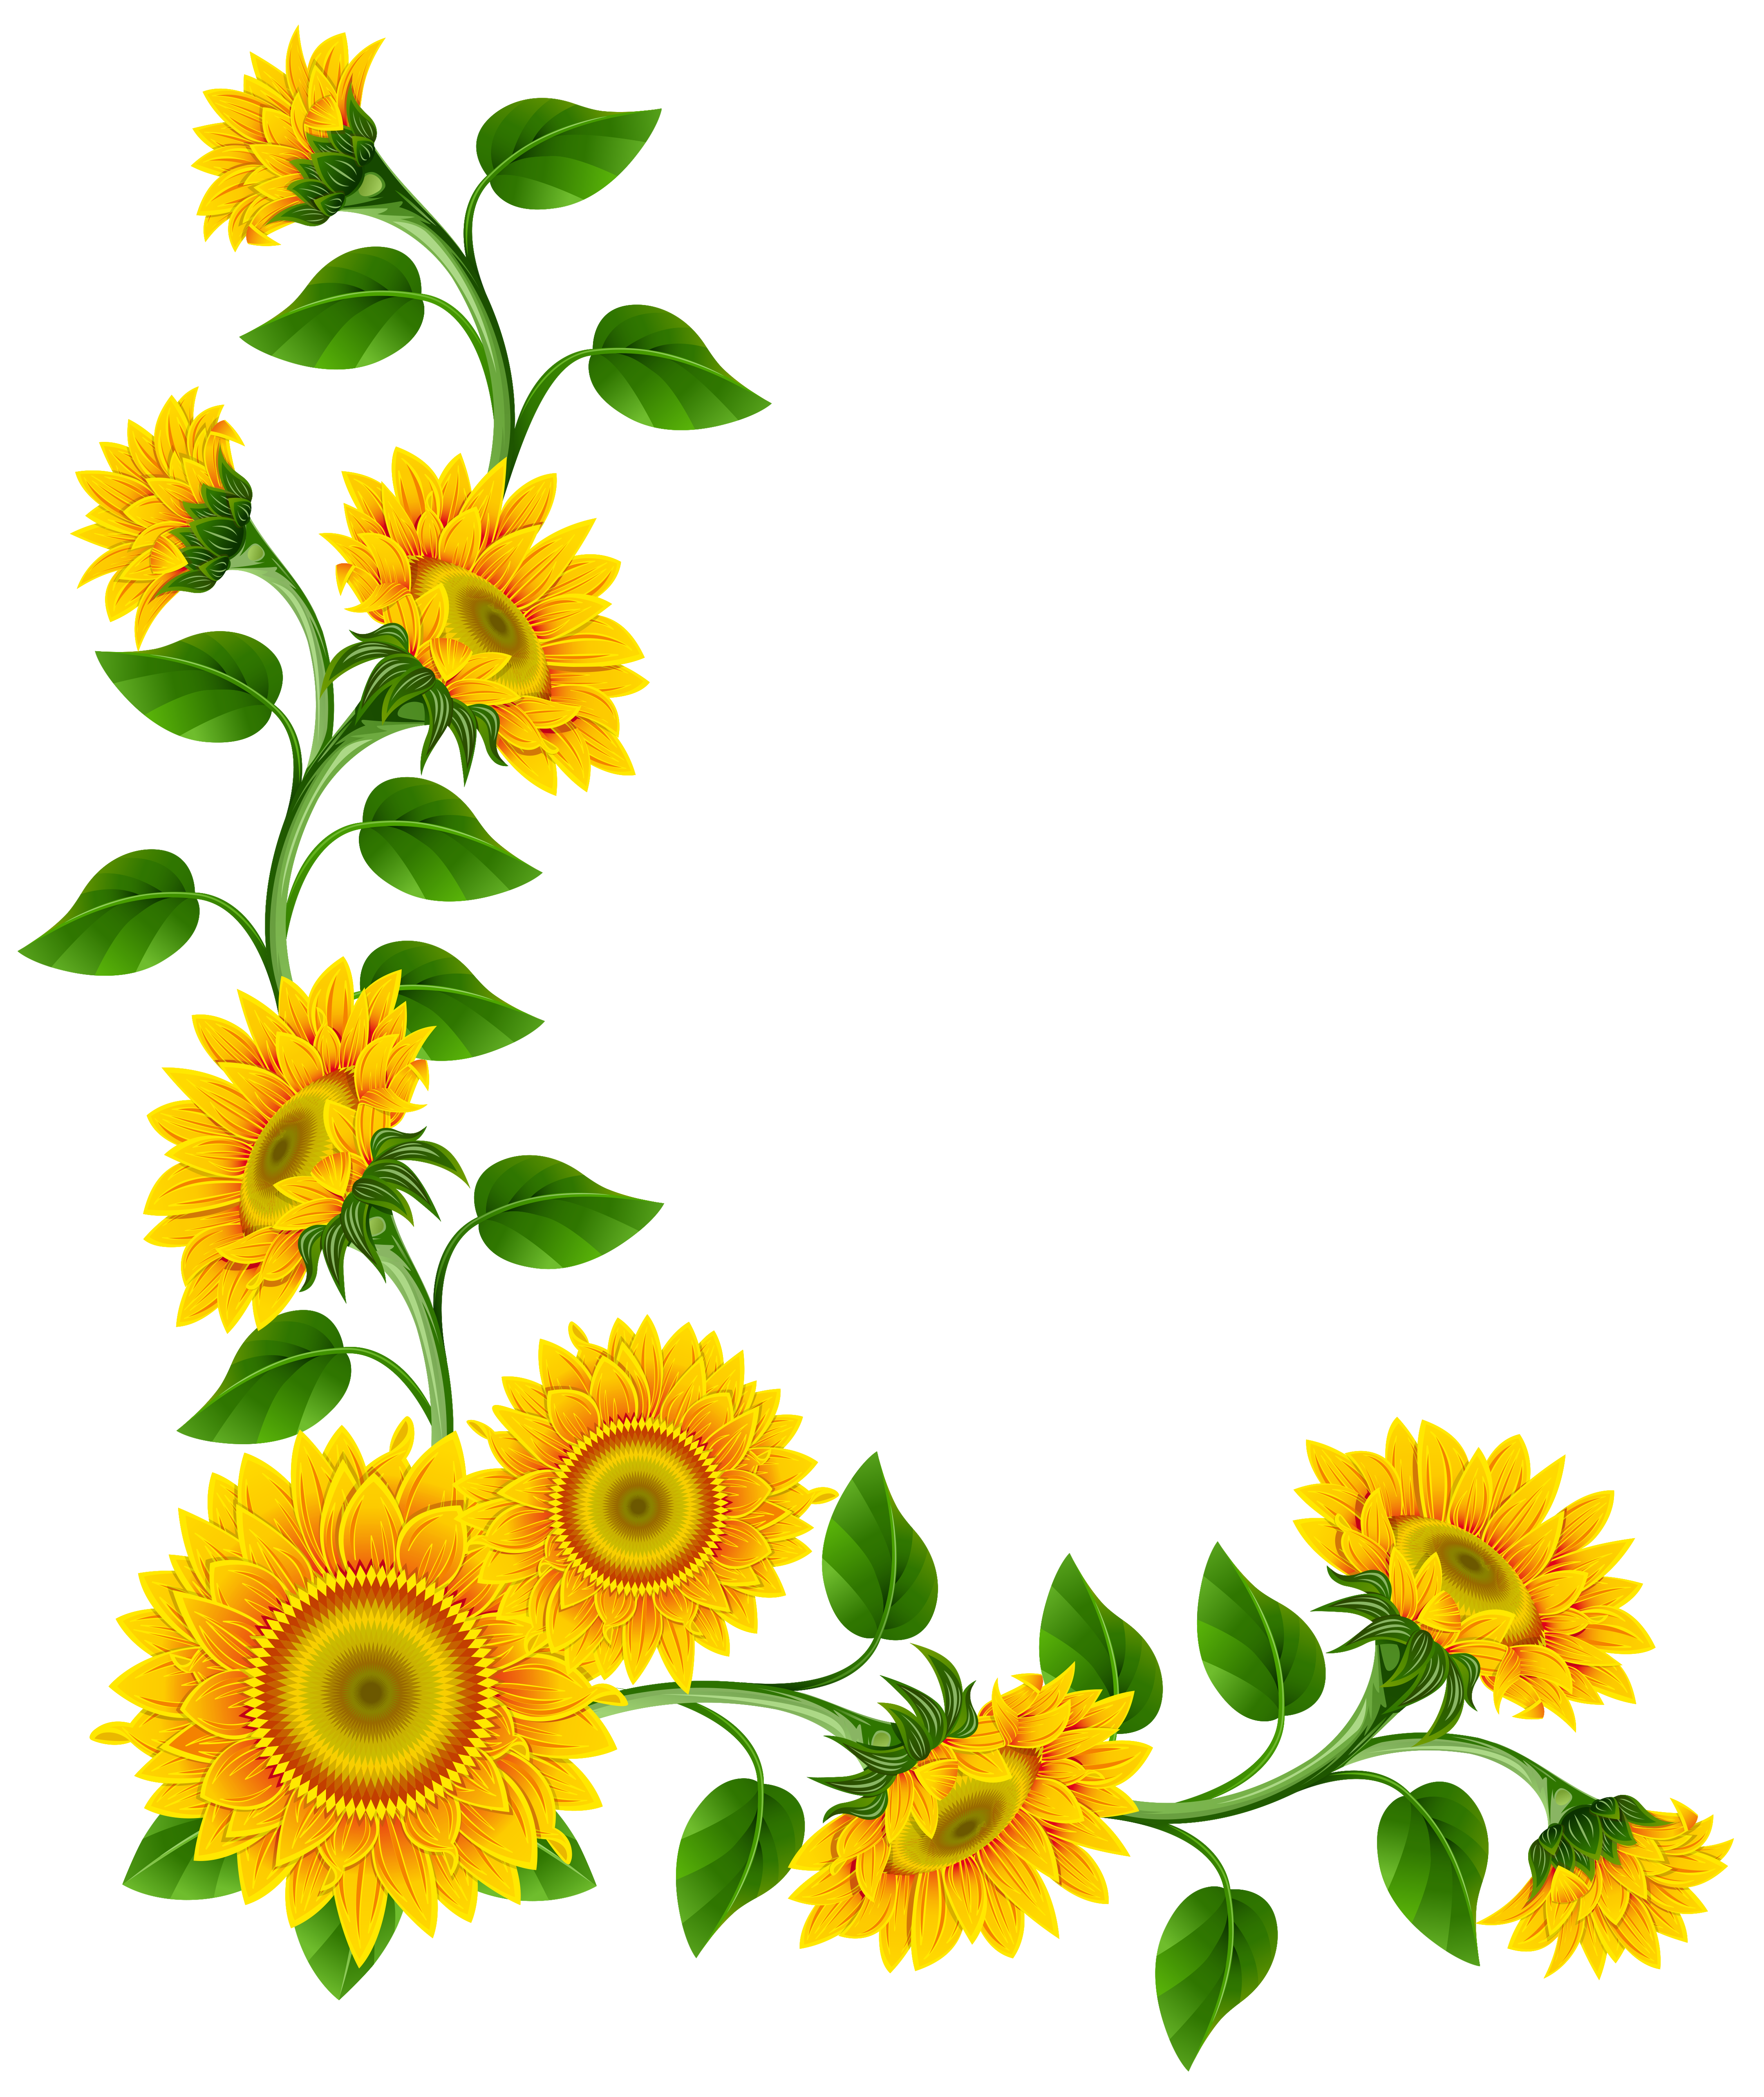 Yellow flower border png. Sunflower decoration clipart image